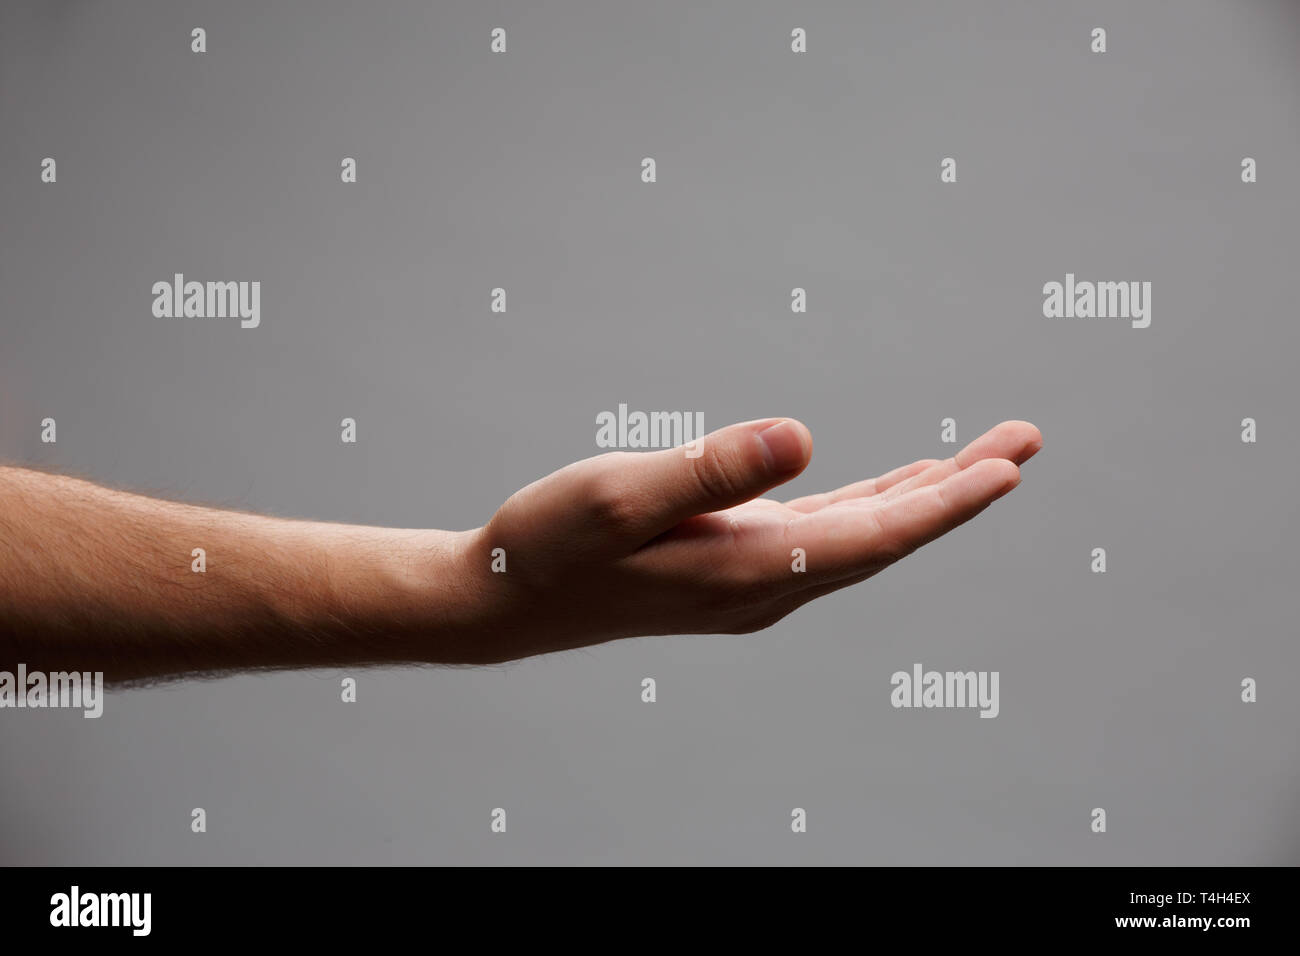 Image of outstretched hand palm up on empty gray background. Stock Photo